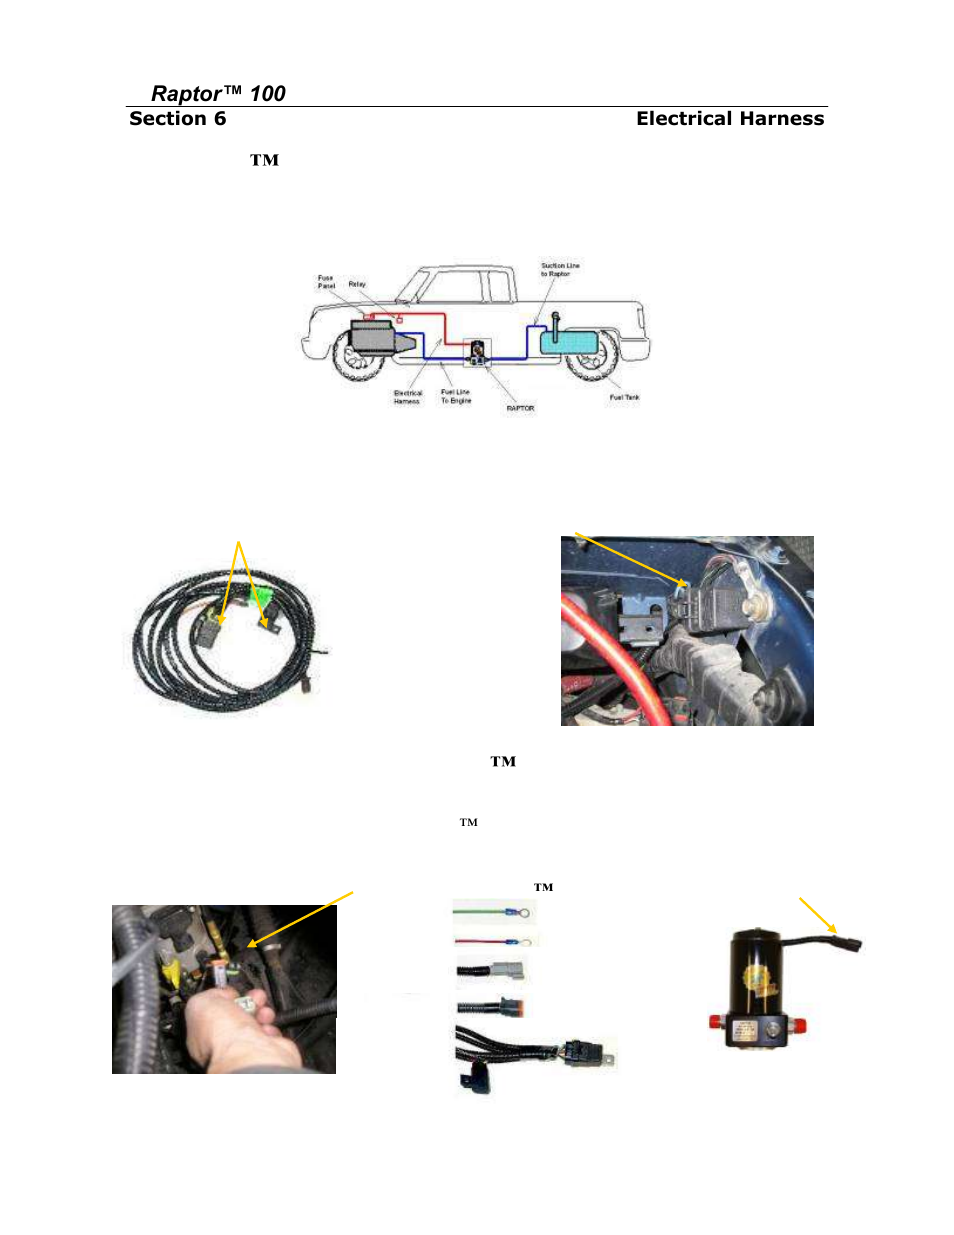 Connecting The Raptor To Ecm Lead Figure 17 18 Pin Connector Wiring Harness Pureflow Airdog Rp 150 Dodge Cummins 19985 2002 User Manual Page 13 19